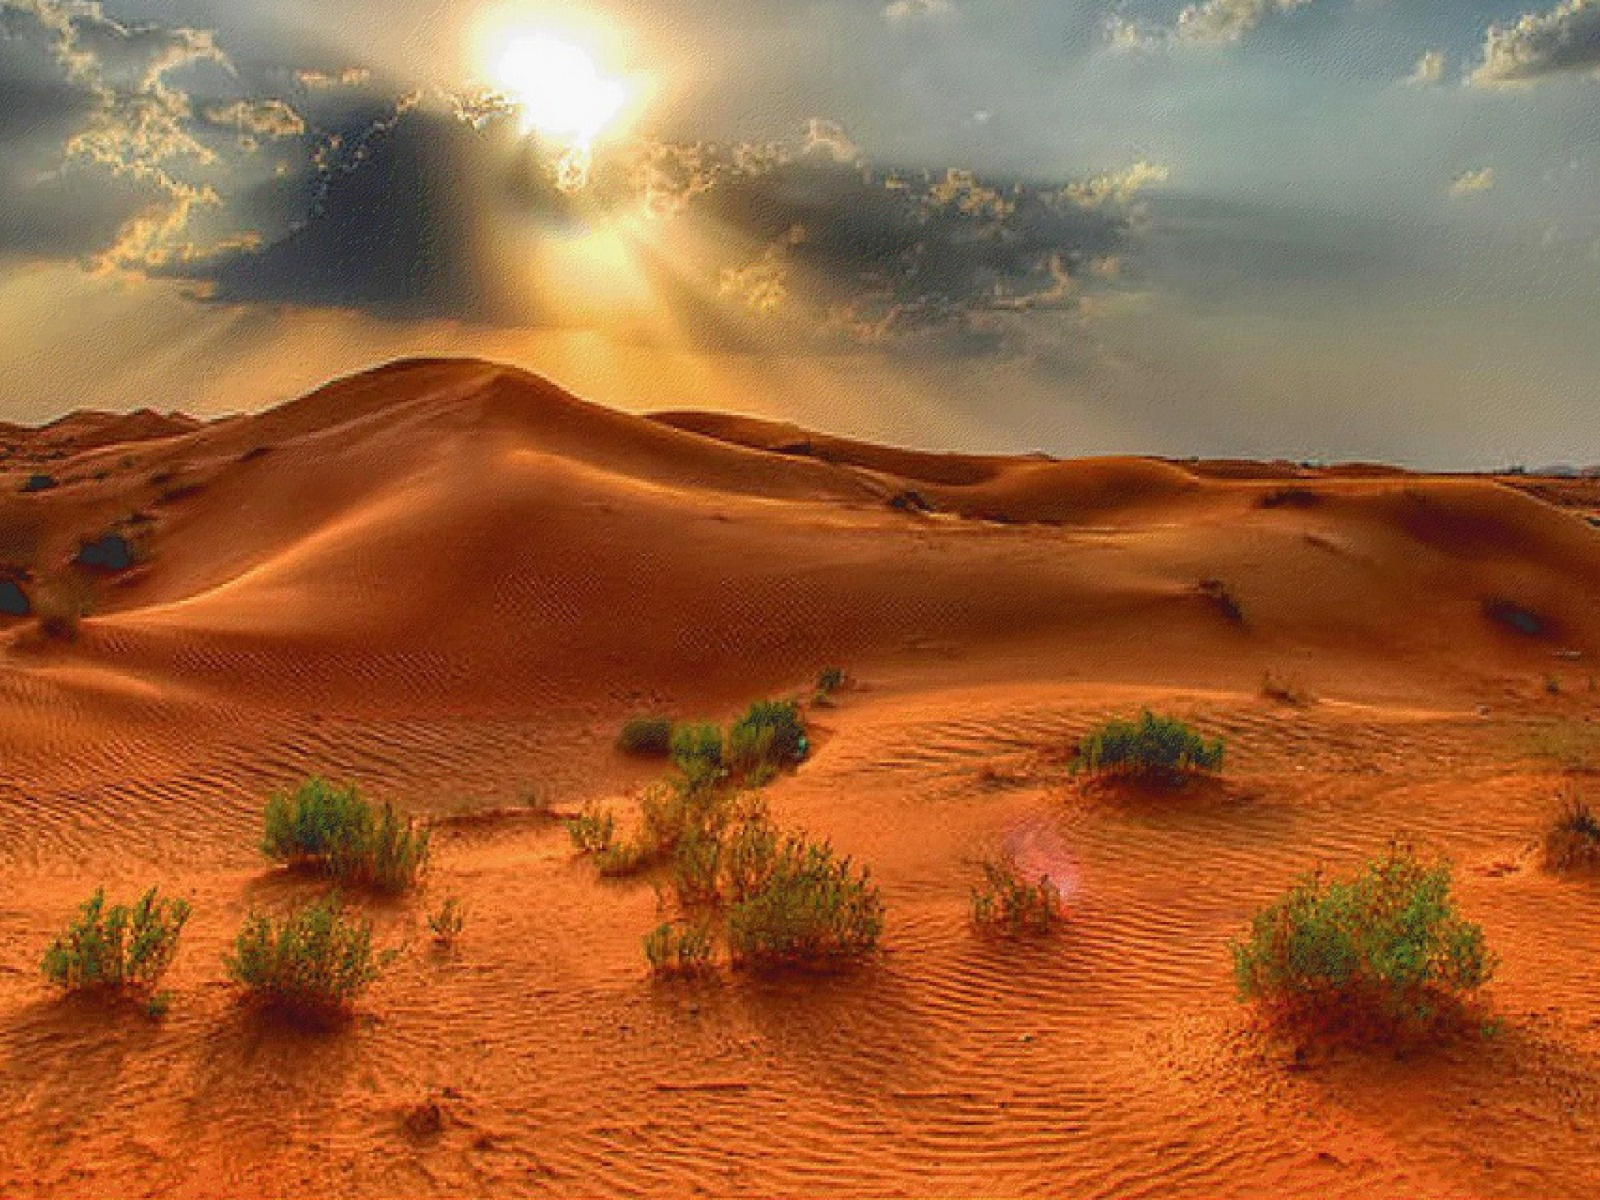 1600x1200 sunlight desert desktop pc and mac wallpaper - Desktop wallpaper 1600x1200 ...